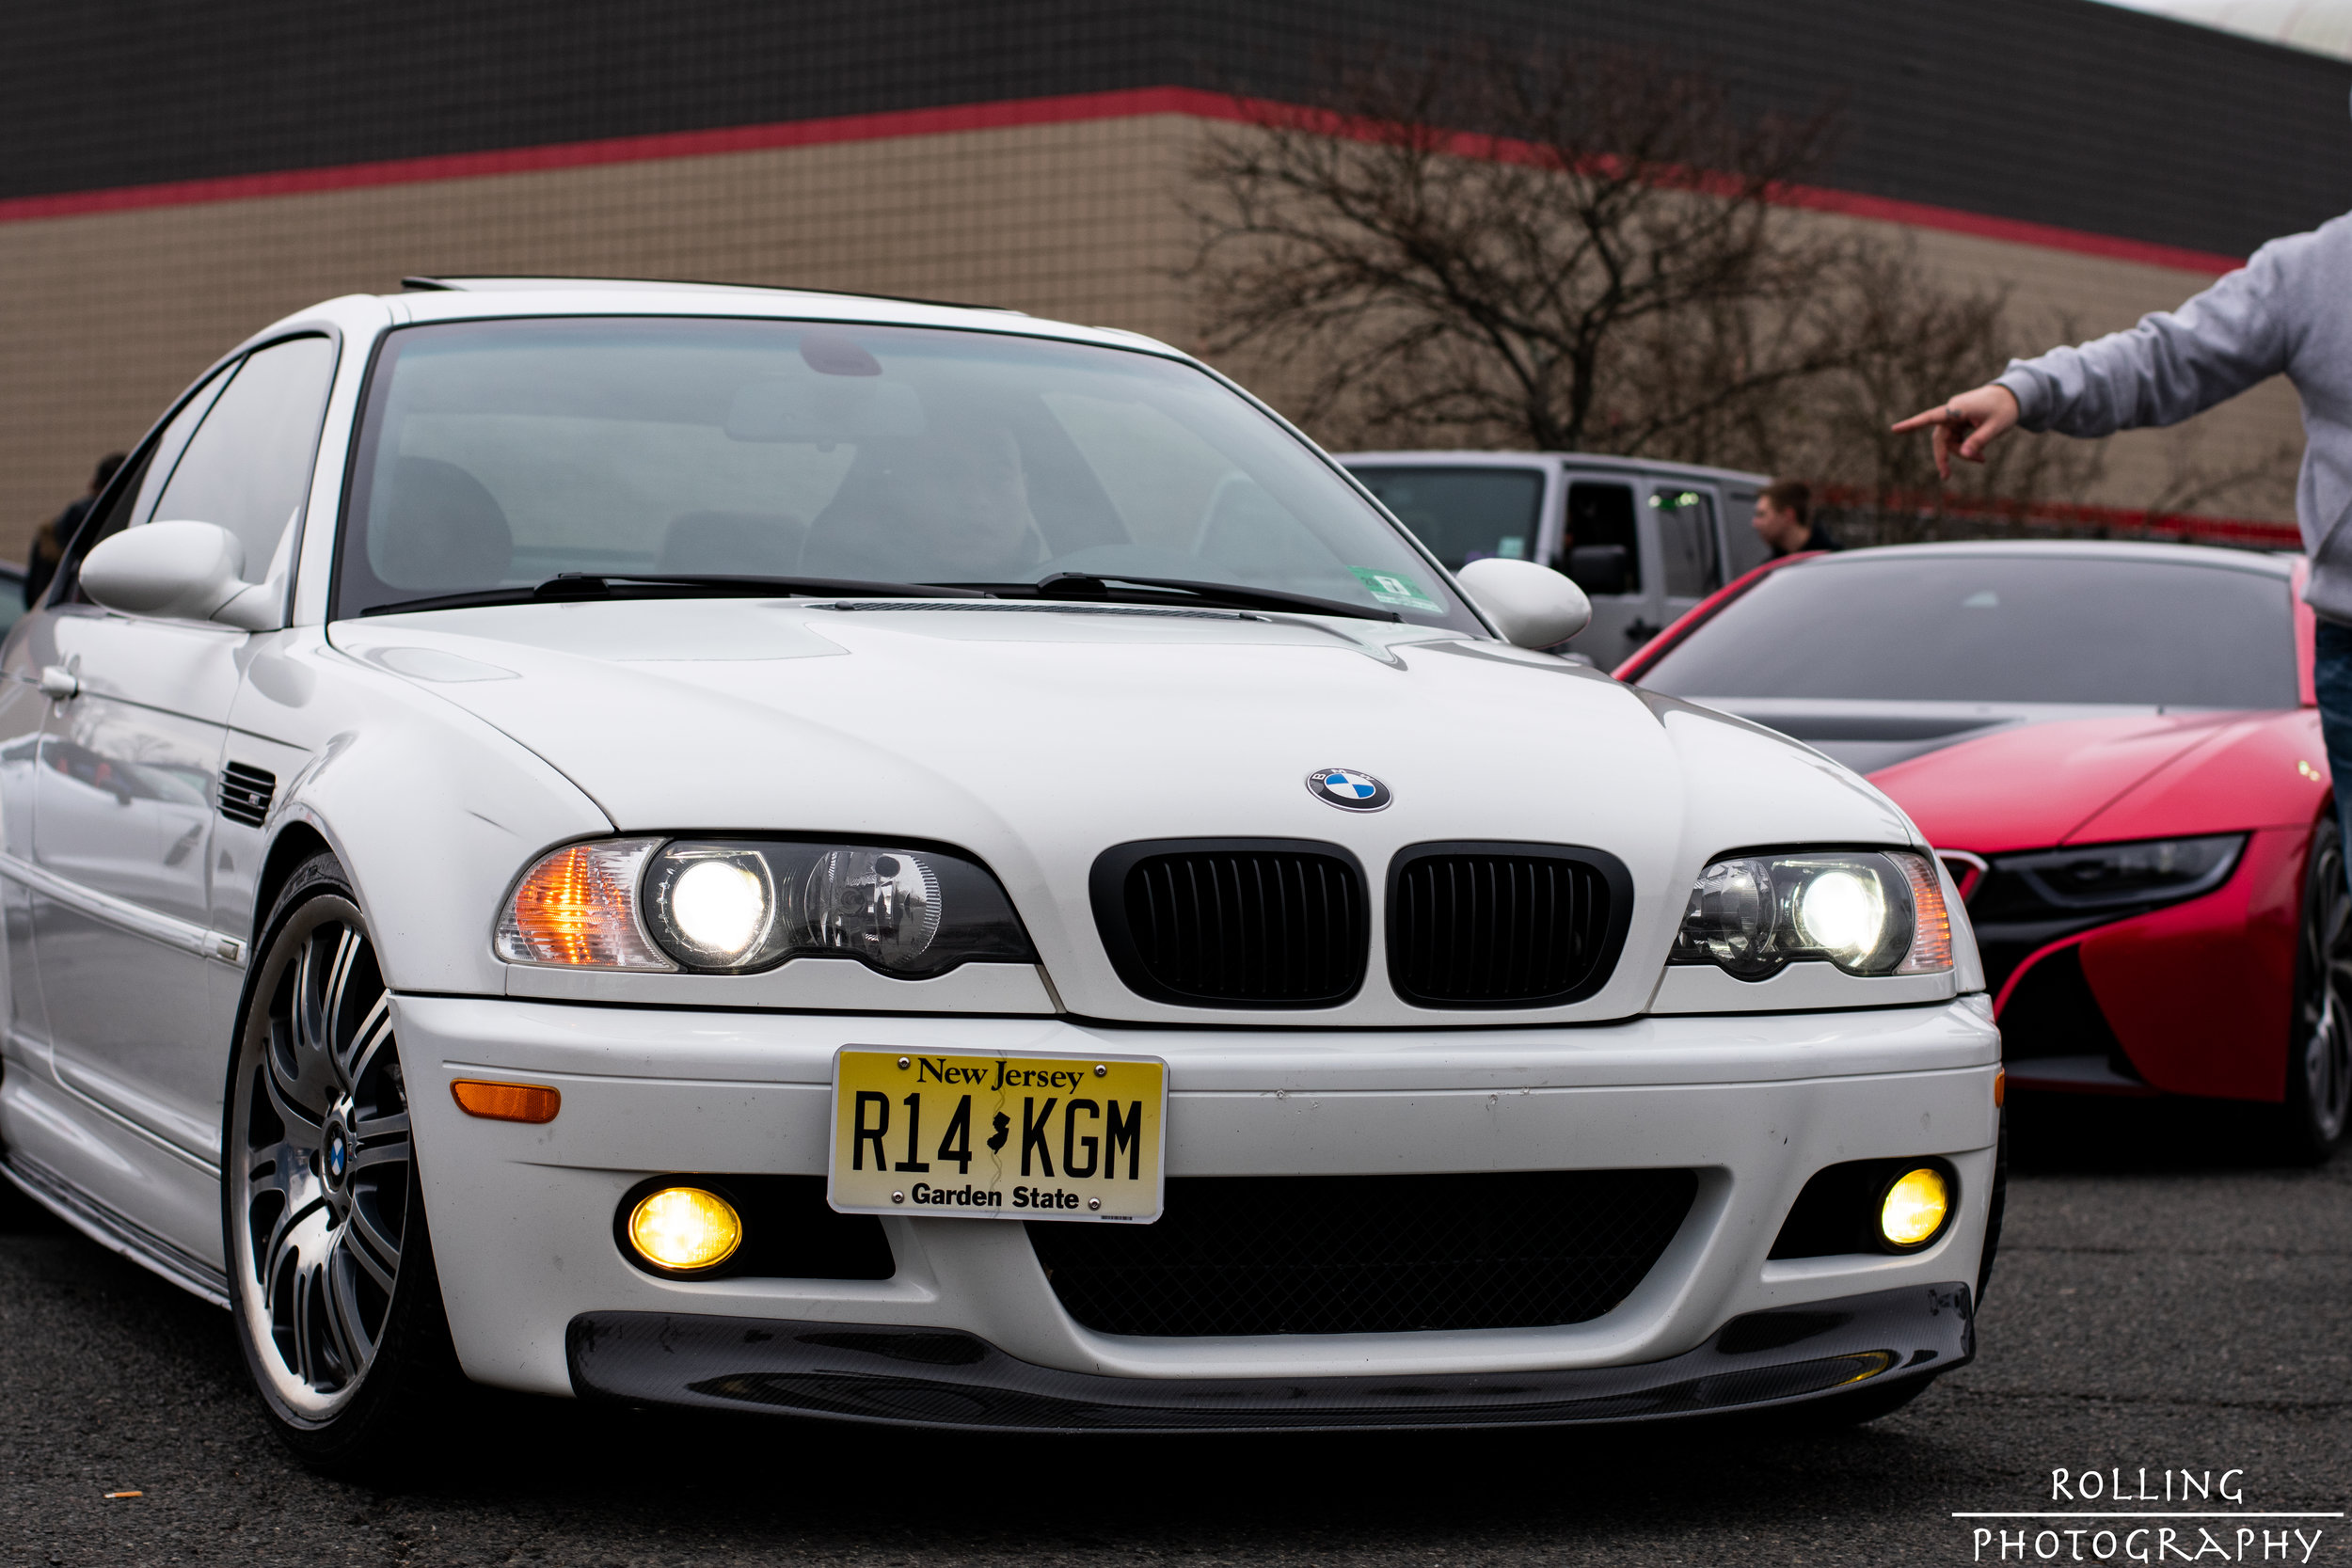 BMW M3 (E46) (White)  ISO 200, 50mm, f / 4.5 Shutter Speed 1/640